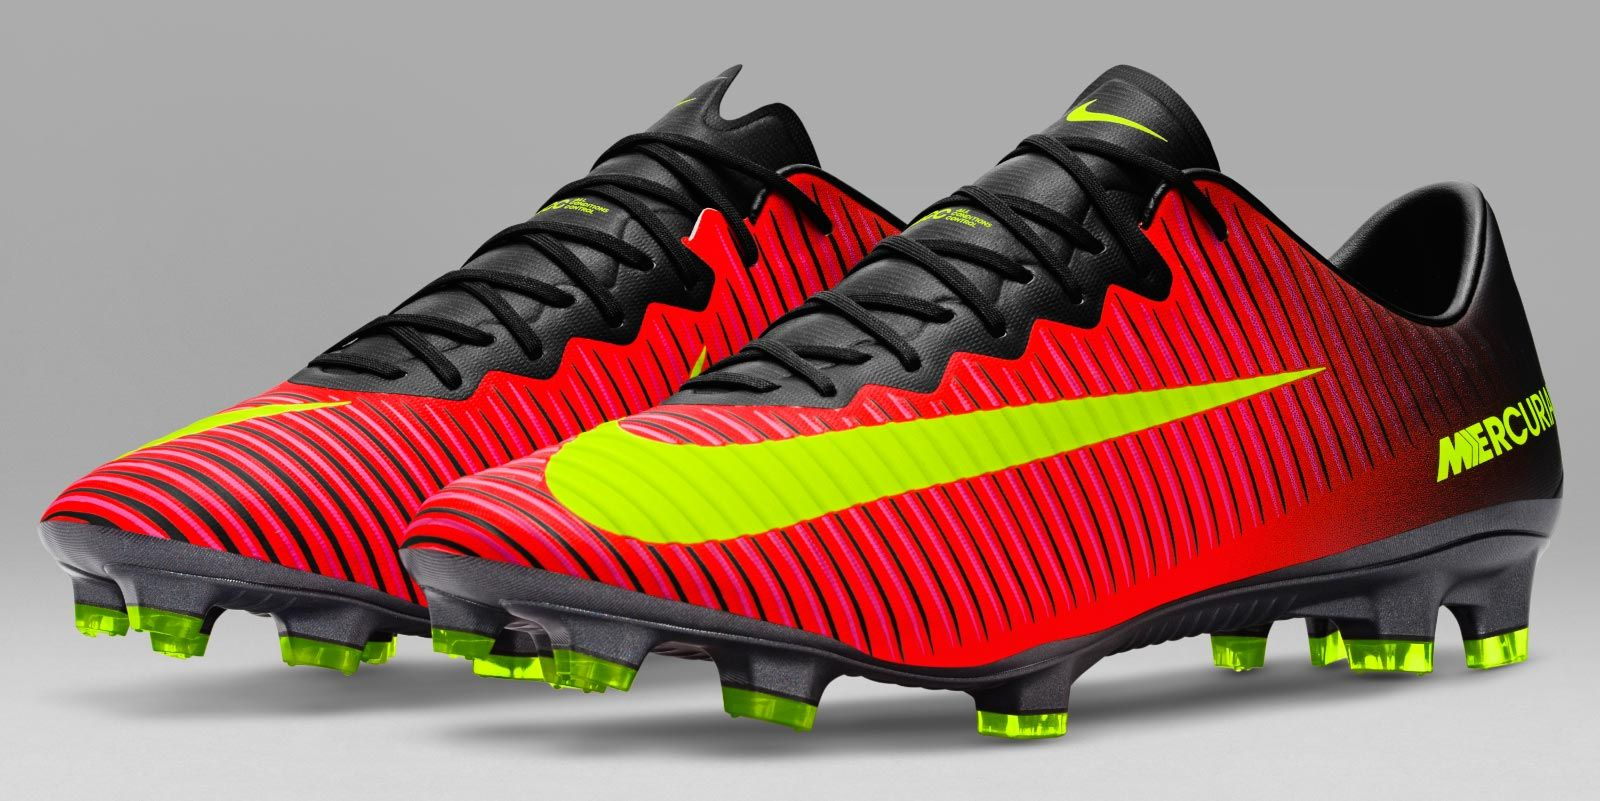 Next Gen Nike Mercurial Vapor 11 Euro 2016 Boots Released Soccer Boots Nike Football Football Shoes